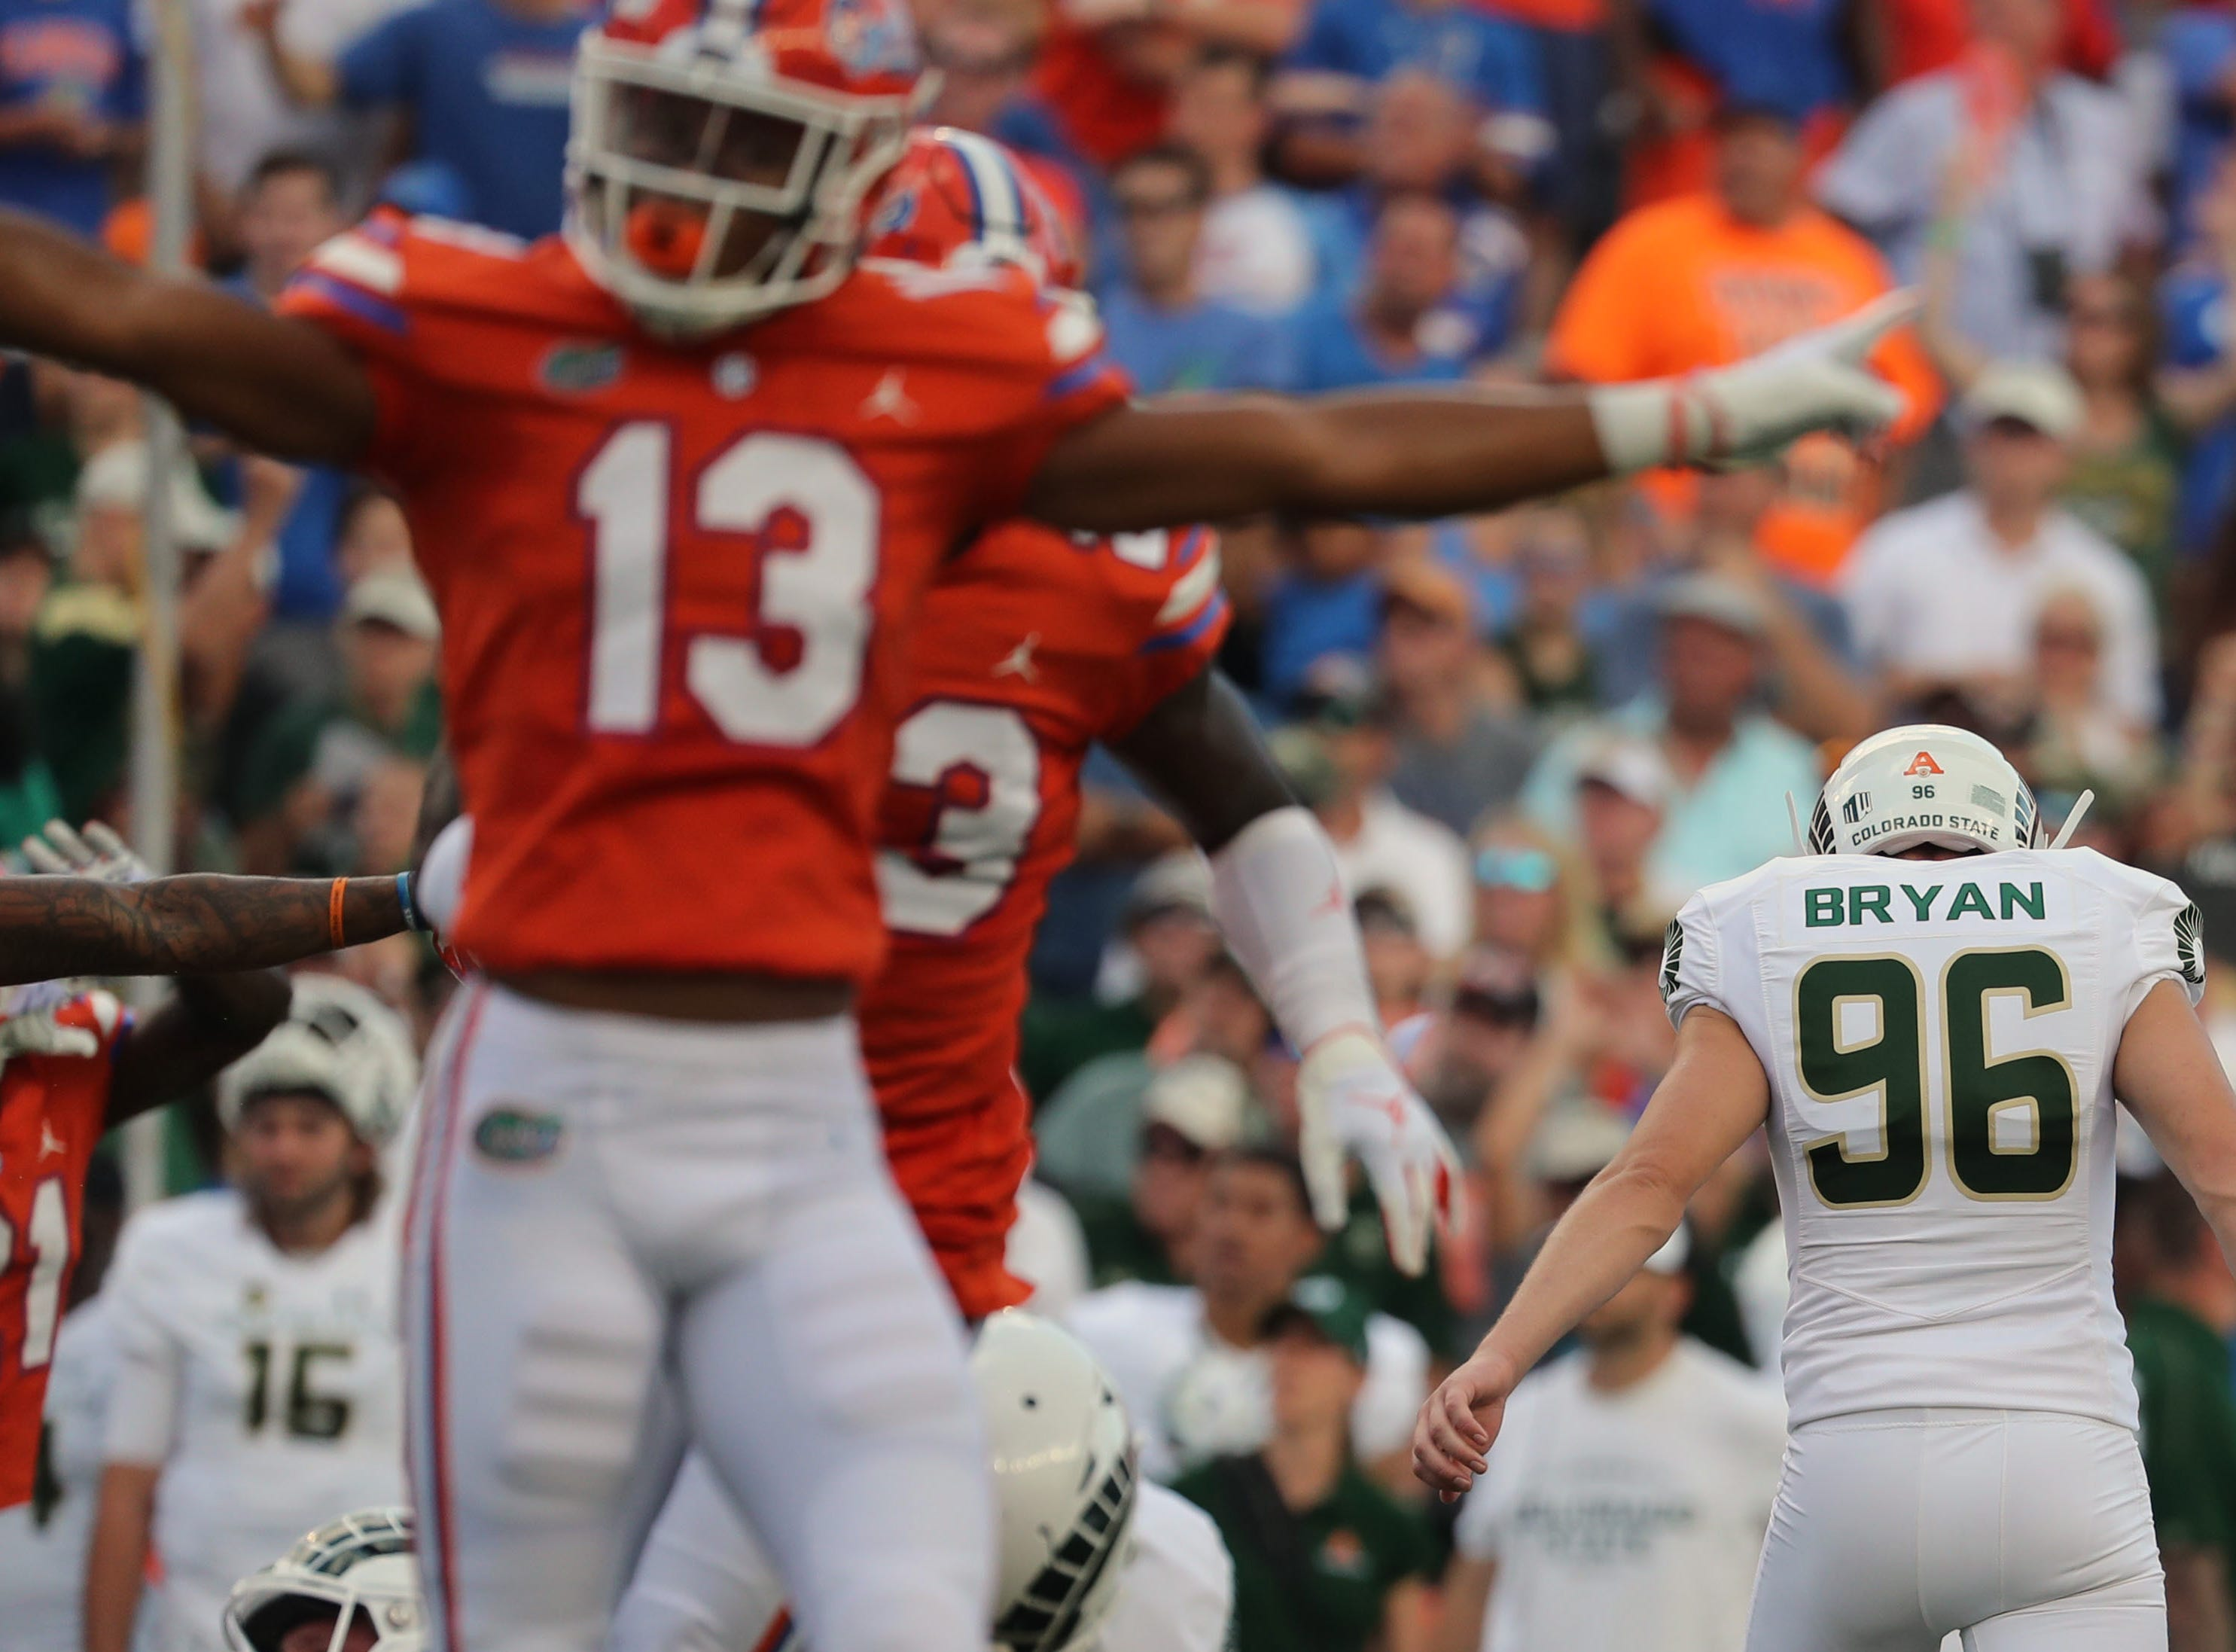 Sep 15, 2018; Gainesville, FL, USA; Colorado State Rams place kicker Wyatt Bryan (96) misses  field goal during the first quarter against the Florida Gators at Ben Hill Griffin Stadium. Mandatory Credit: Kim Klement-USA TODAY Sports